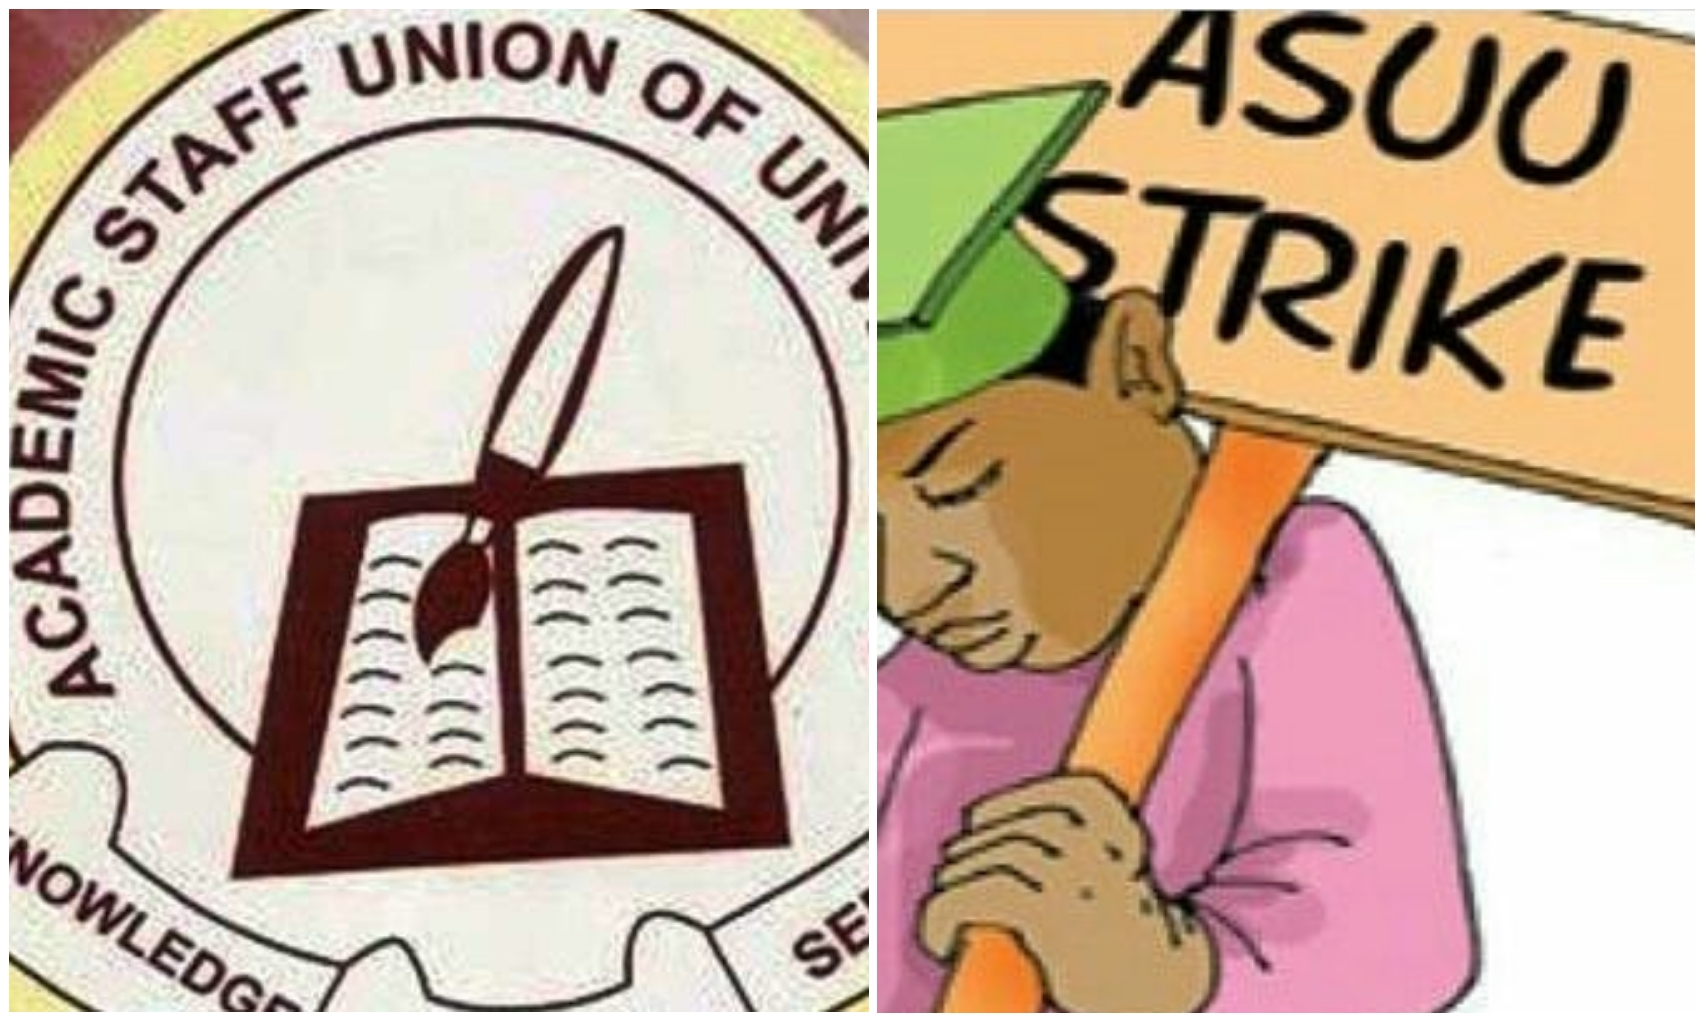 ASUU issue stern warning to its members not to engage in any online lectures